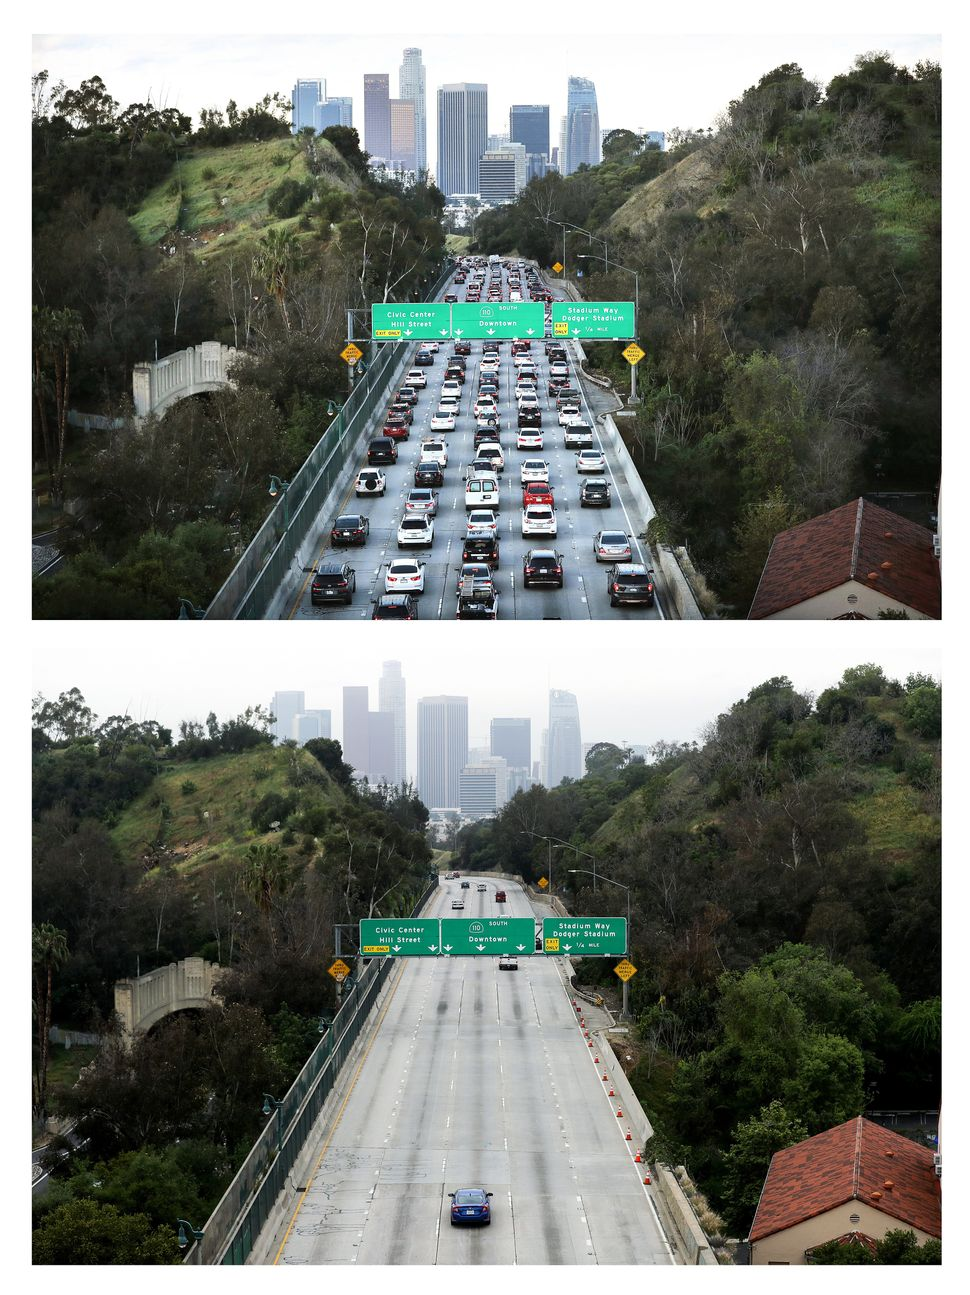 Cars heading downtown during rush hour on the 110 freeway in Los Angeles before stay-at-home orders were issued on March 12,